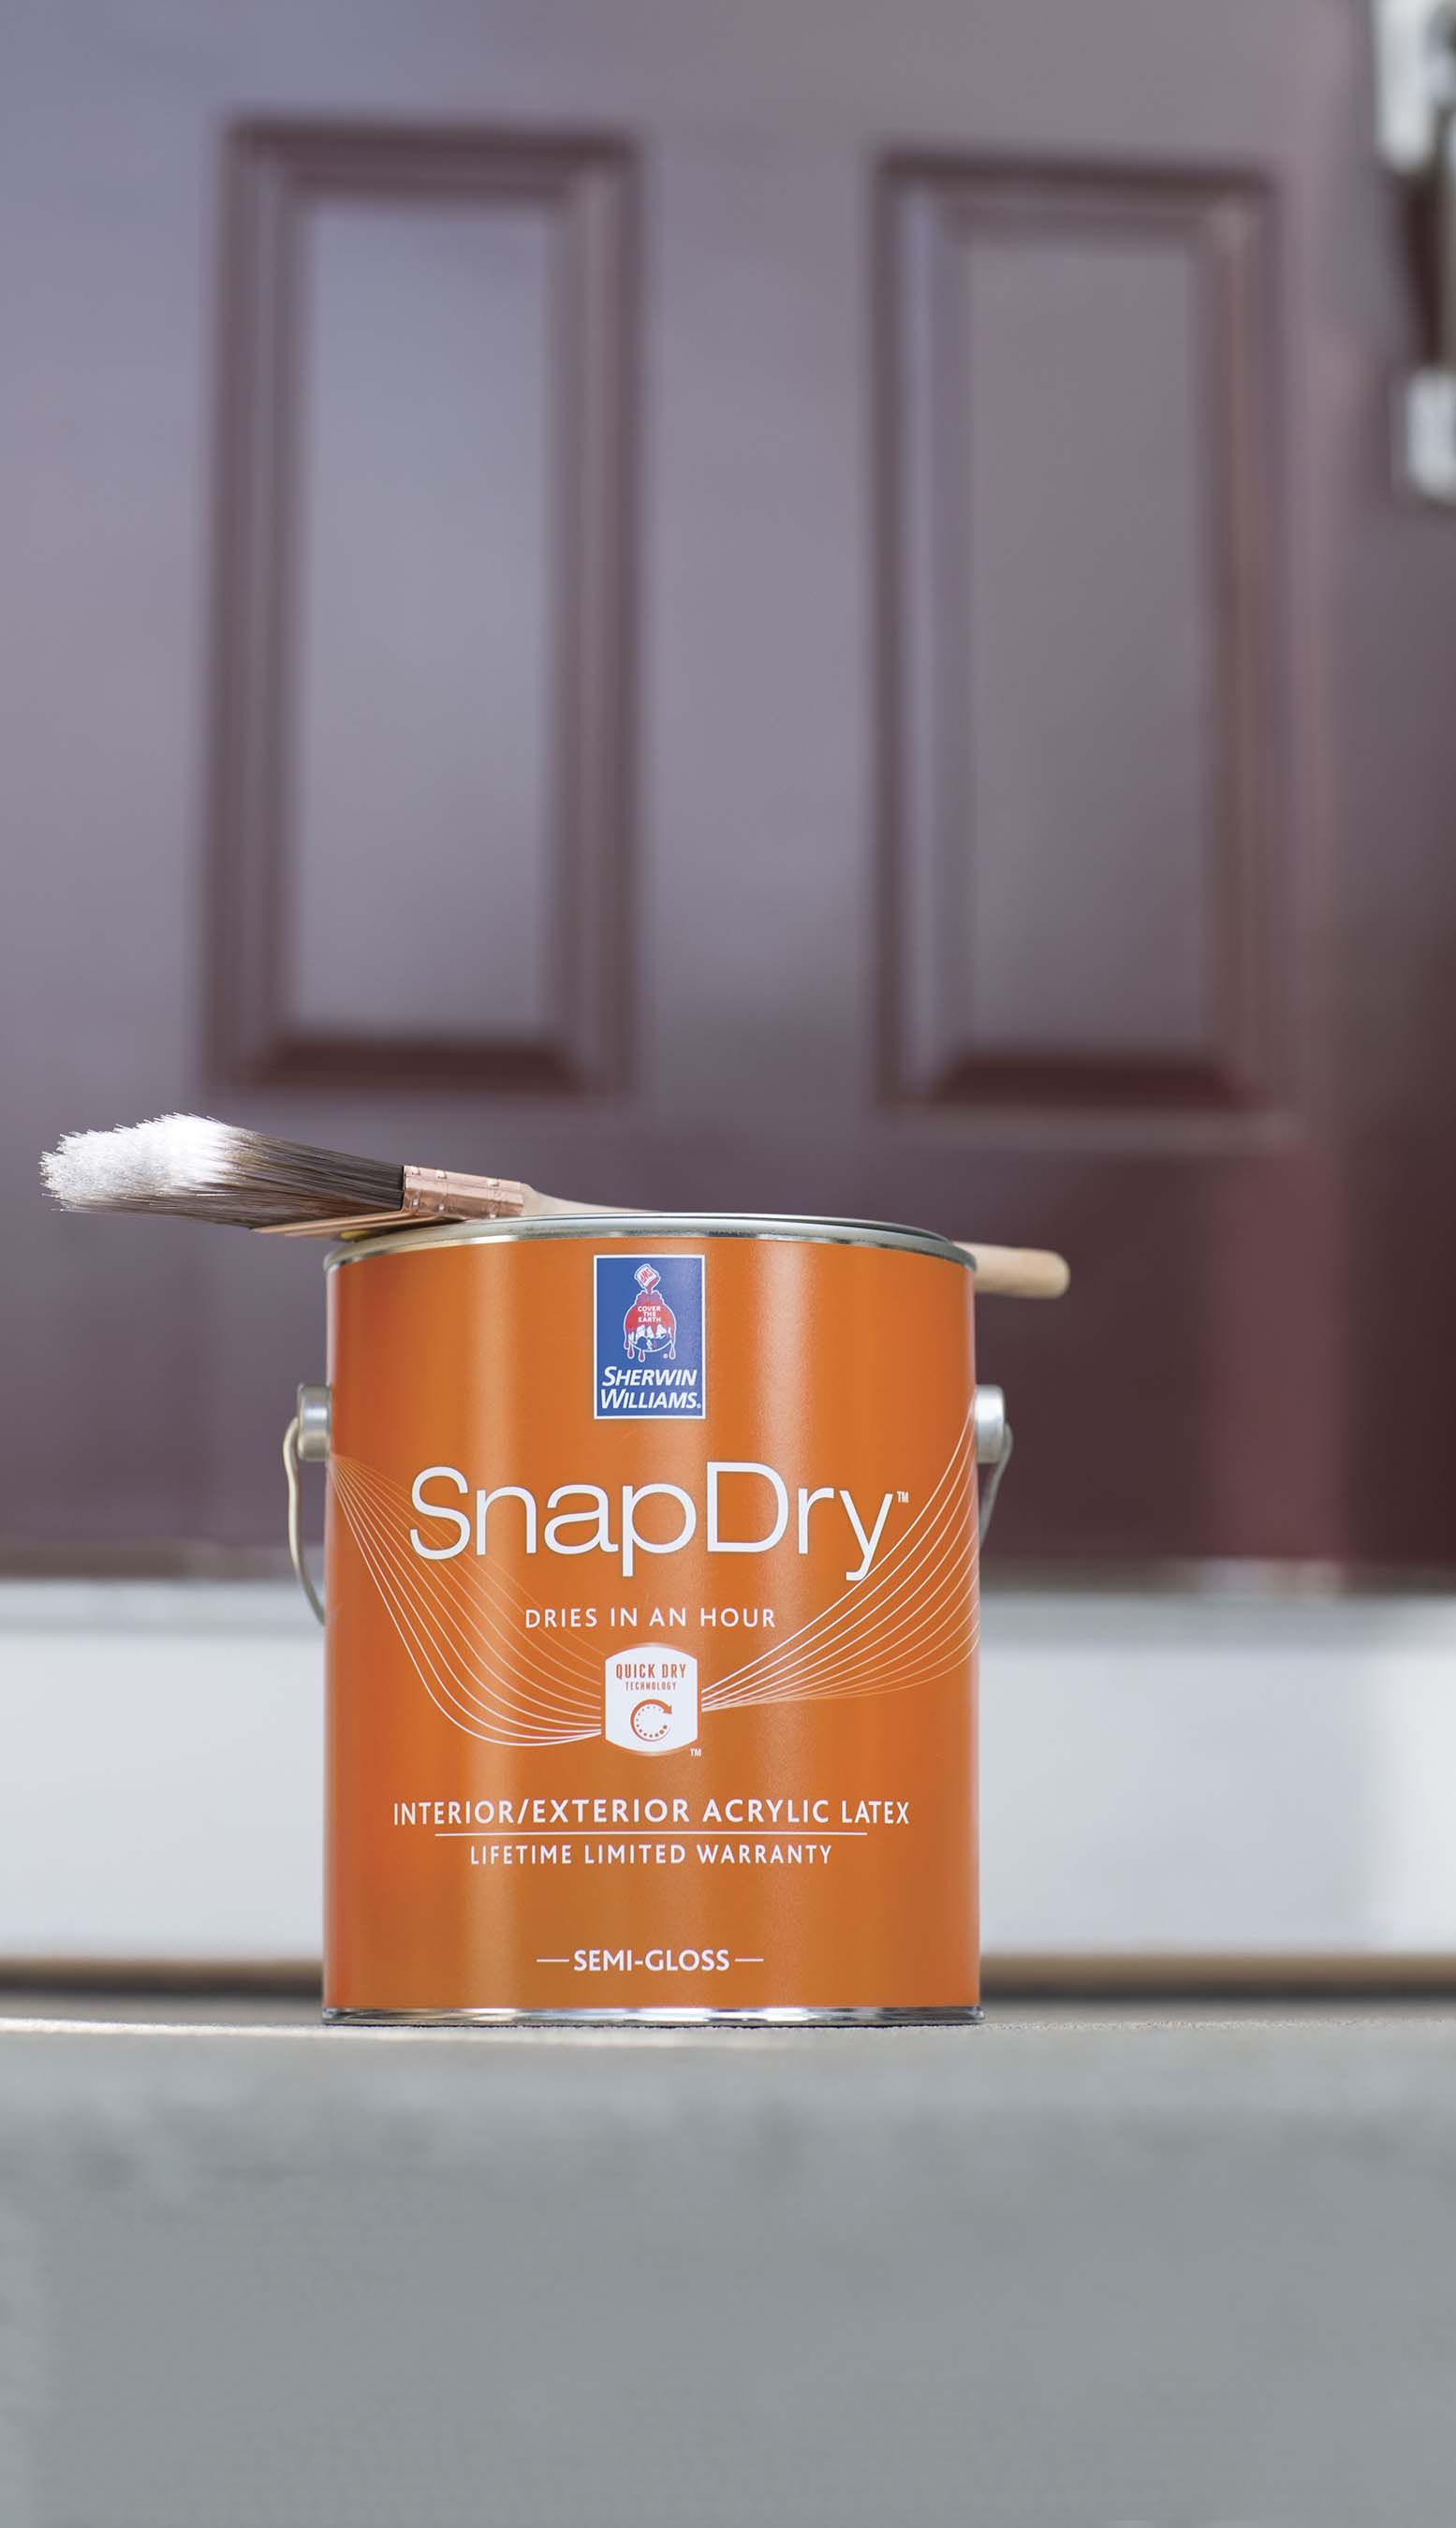 Sherwin-Williams SnapDry™ is a new door and trim paint that dries in just one hour, perfect for quick and colorful projects.